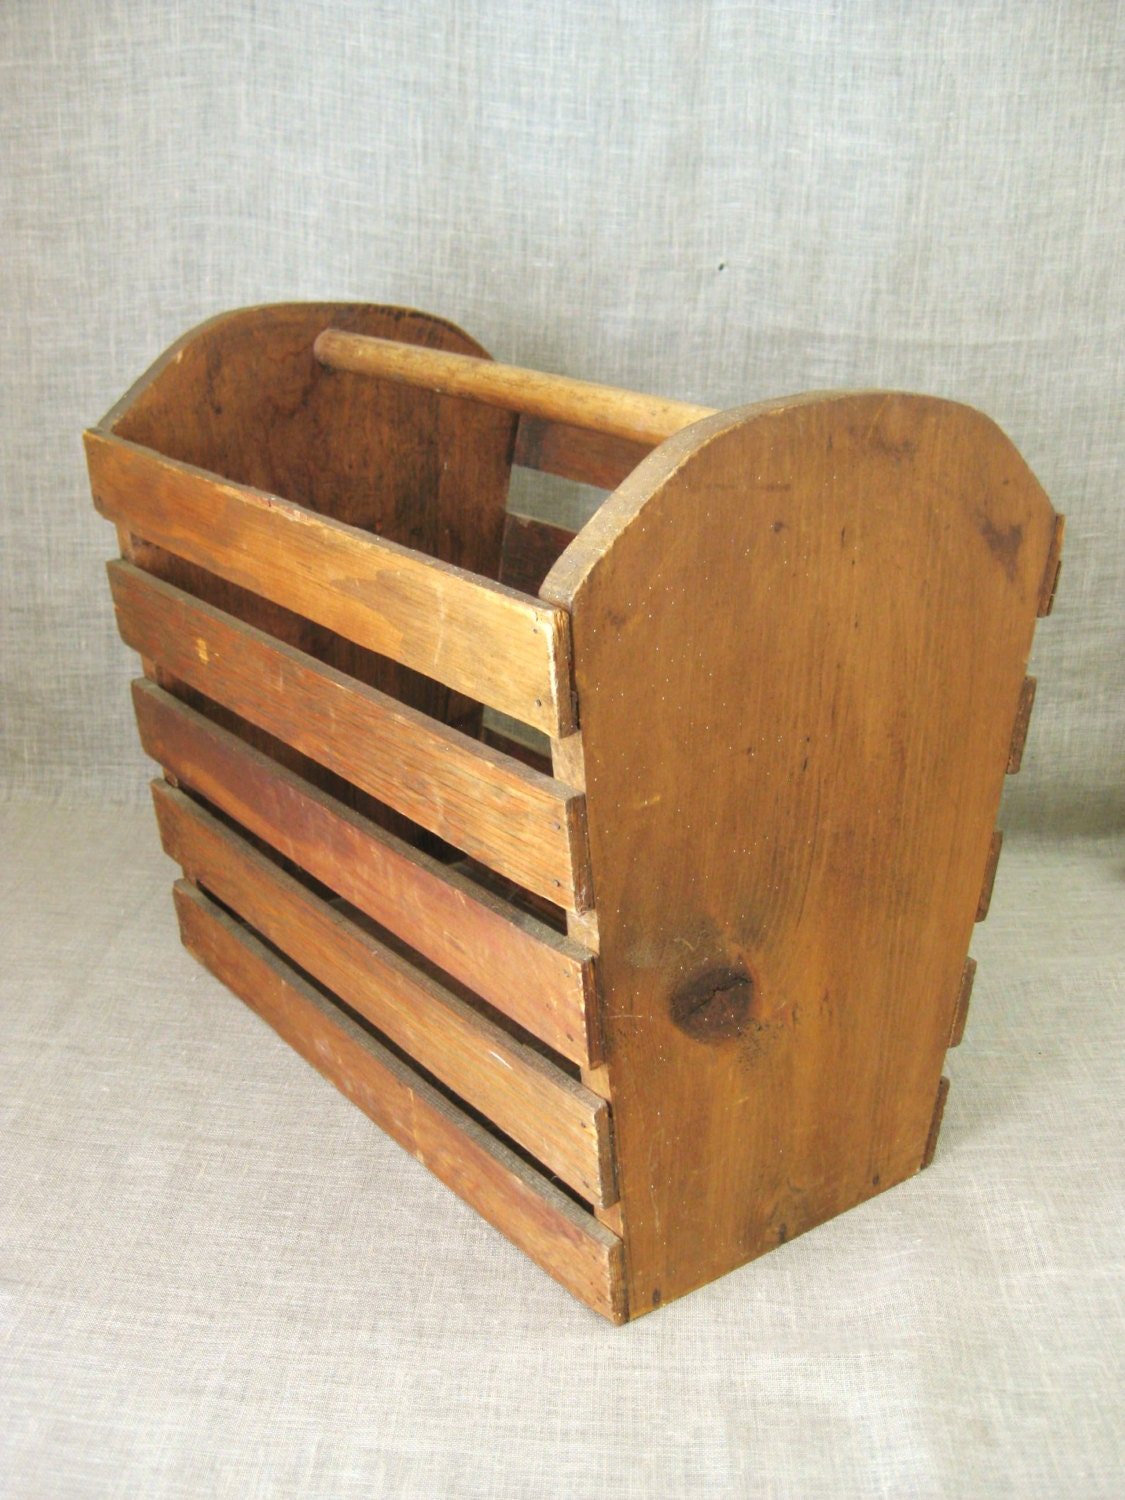 ODORS: Our wooden bins are built storage baskets are available SLPR Decorative Storage Wooden Crates (Set of 3, Rope Handles) | Perfect for Floral Arrangements Gardening Wedding Vintage Country Chic Rustic Distressed Style. by SLPR. $ $ .